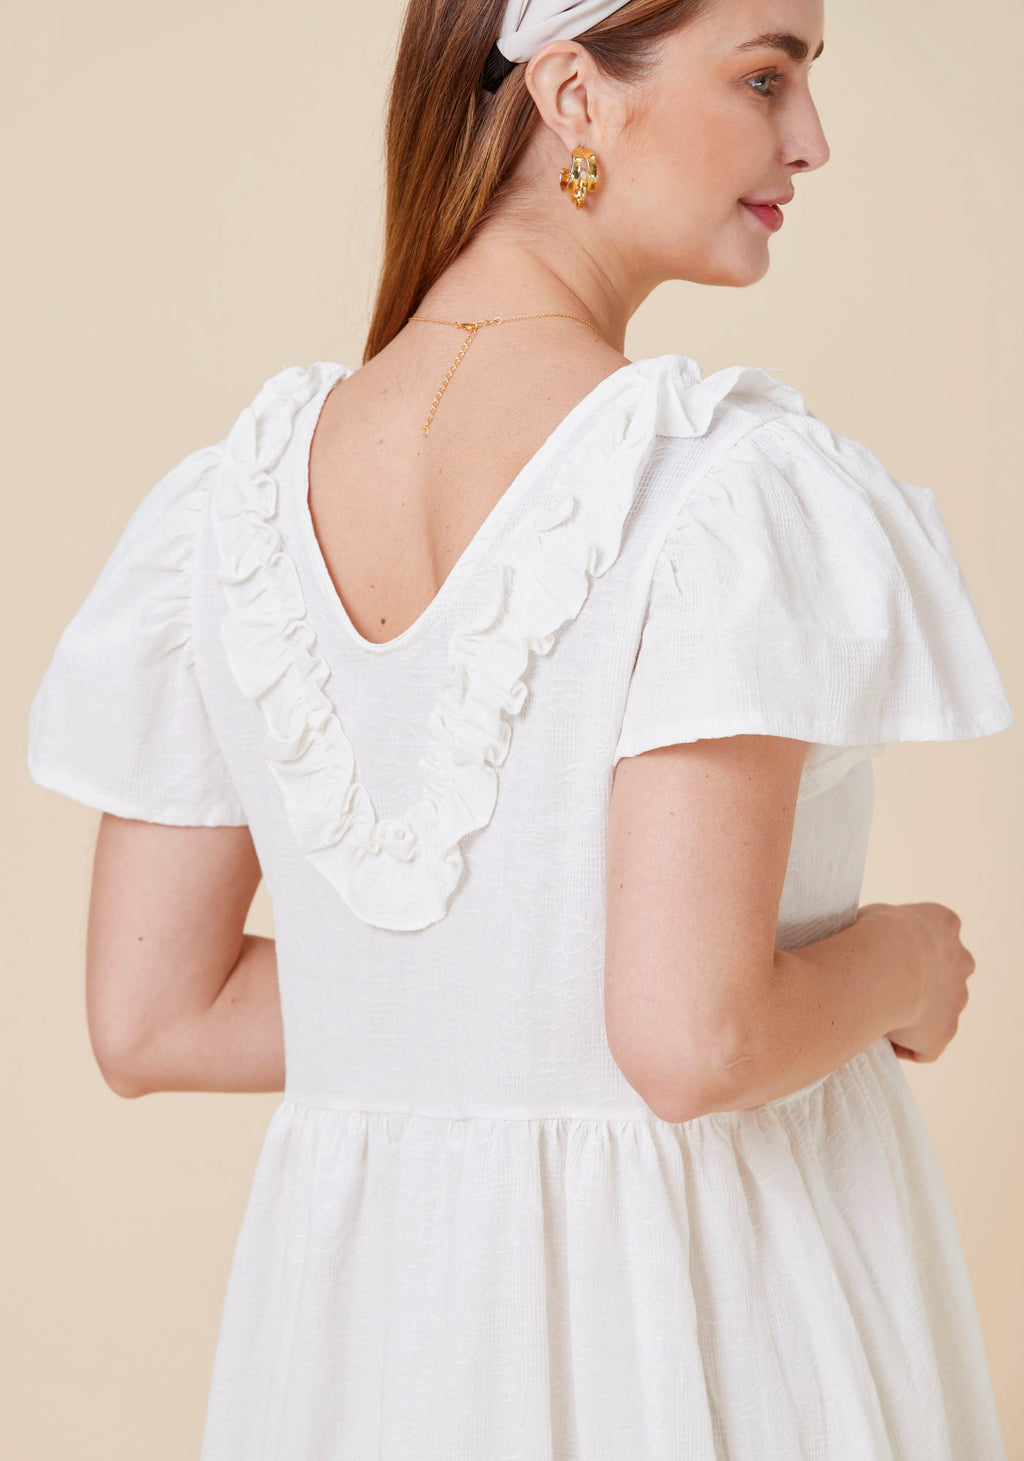 TEXTURED RUFFLE DRESS